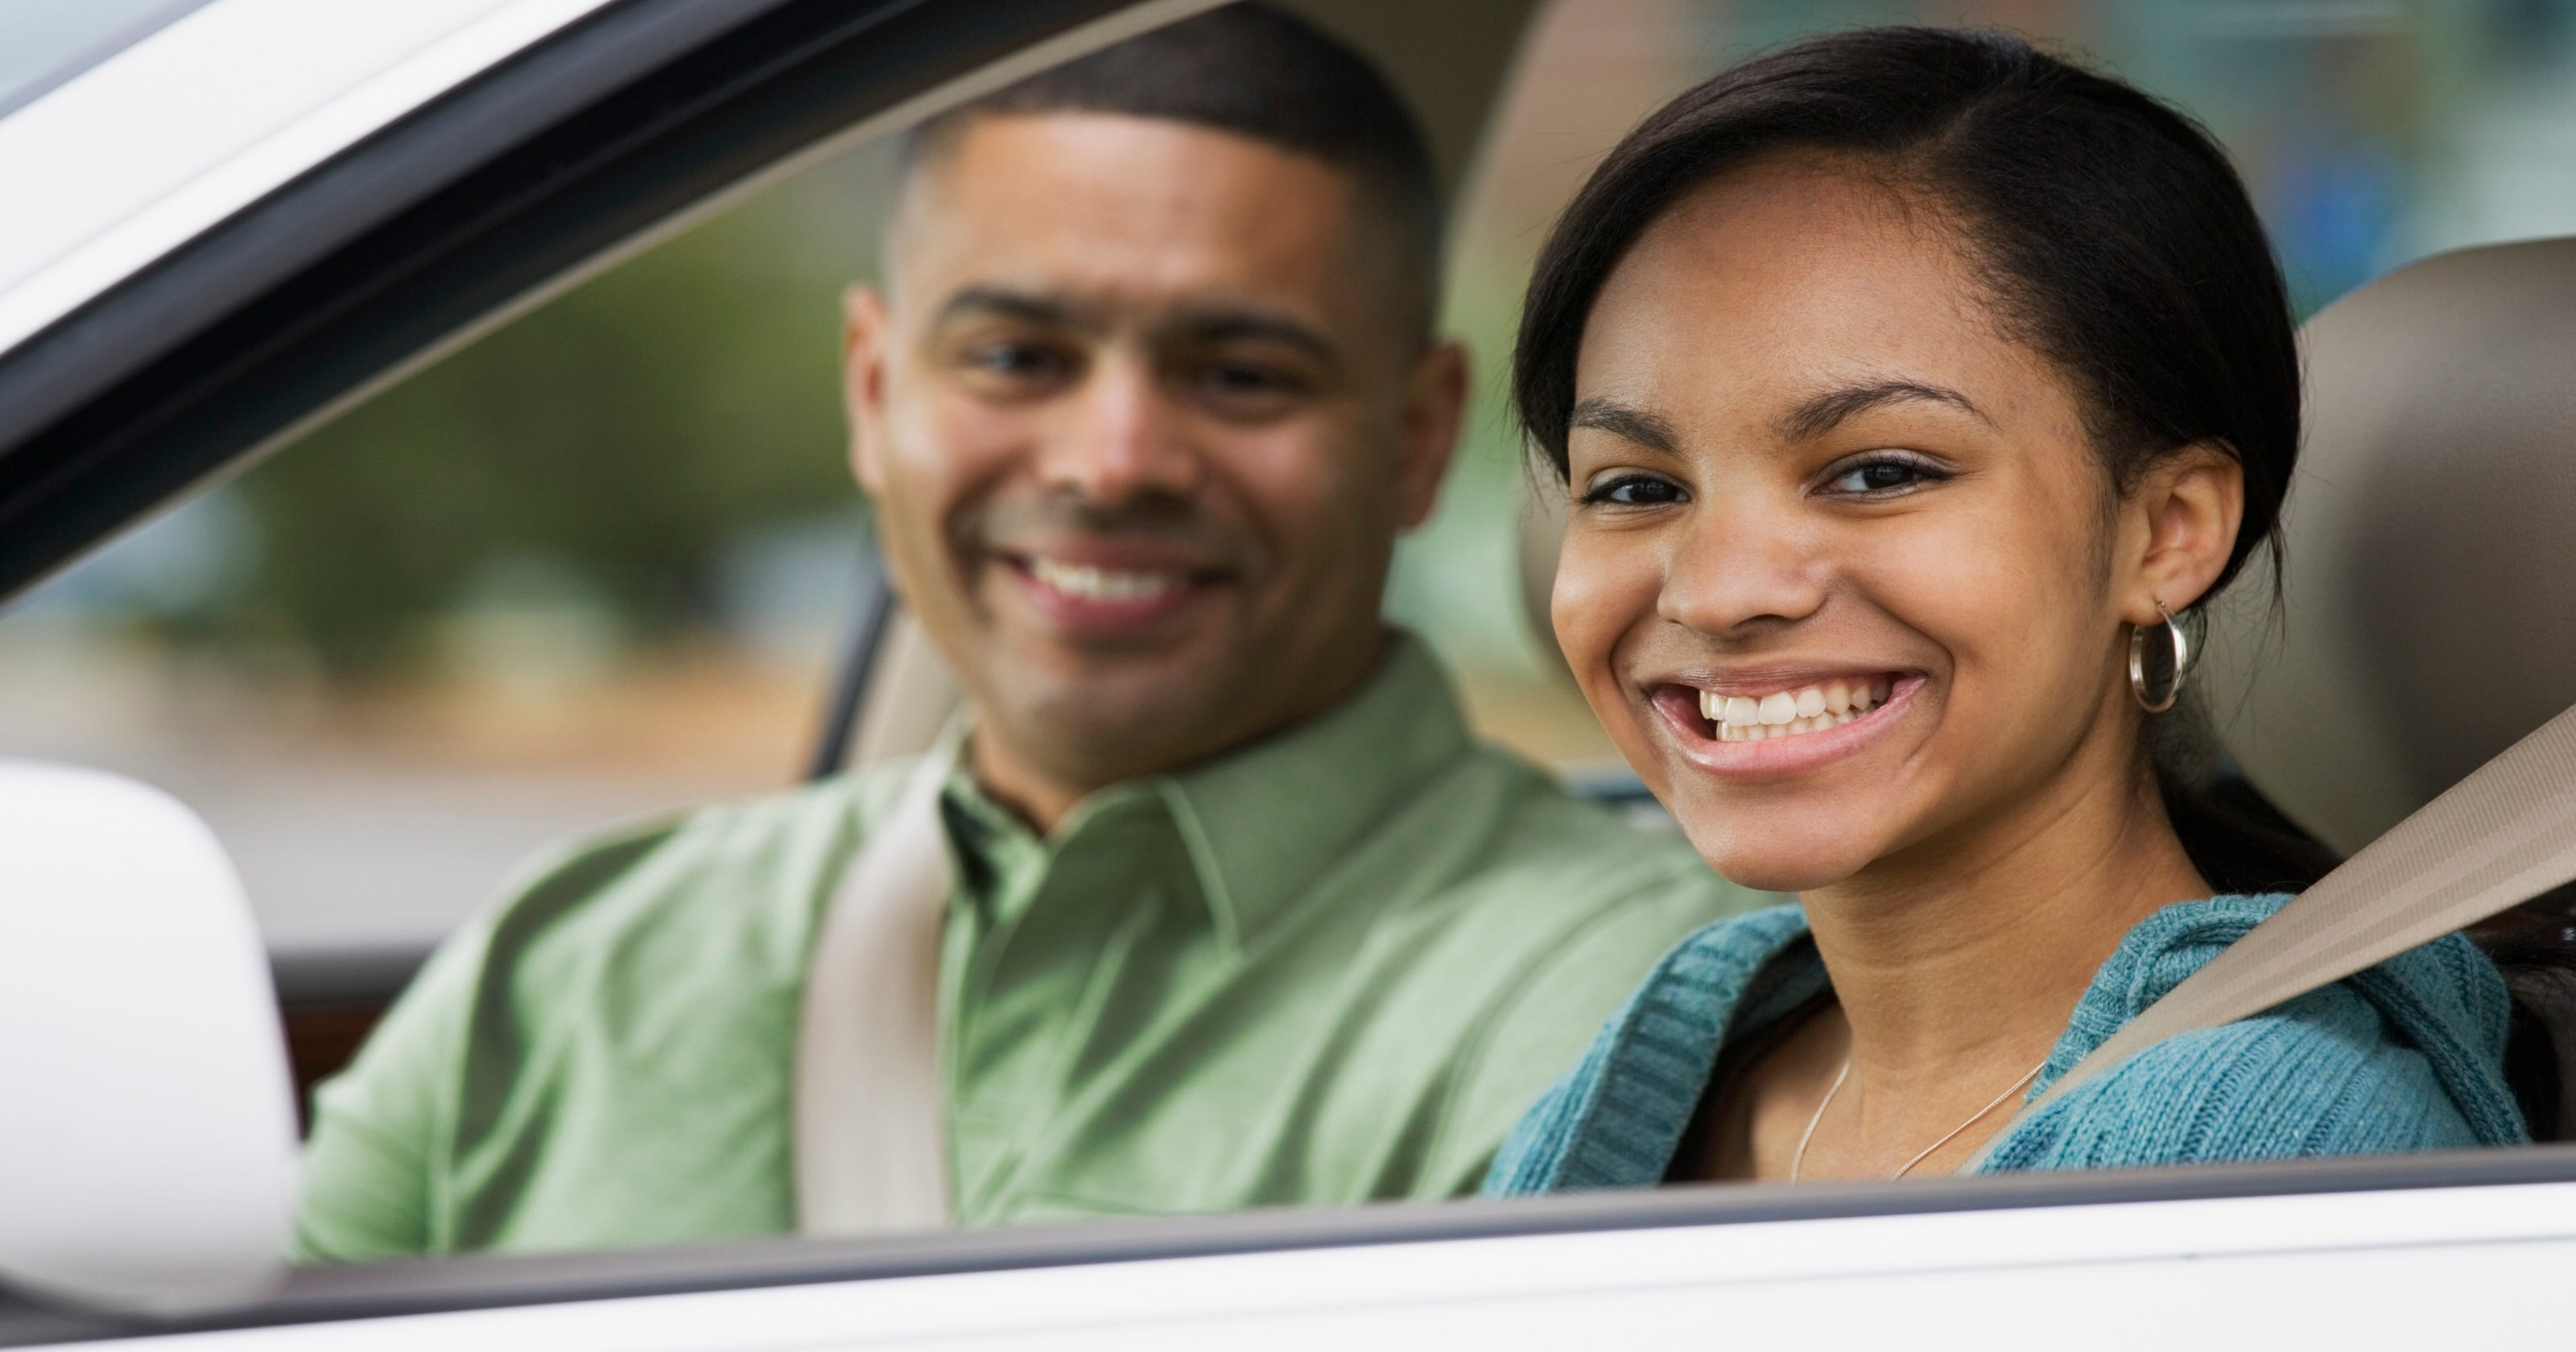 Teen Driving Apps >> Studies: Parents set bad examples for driving teens